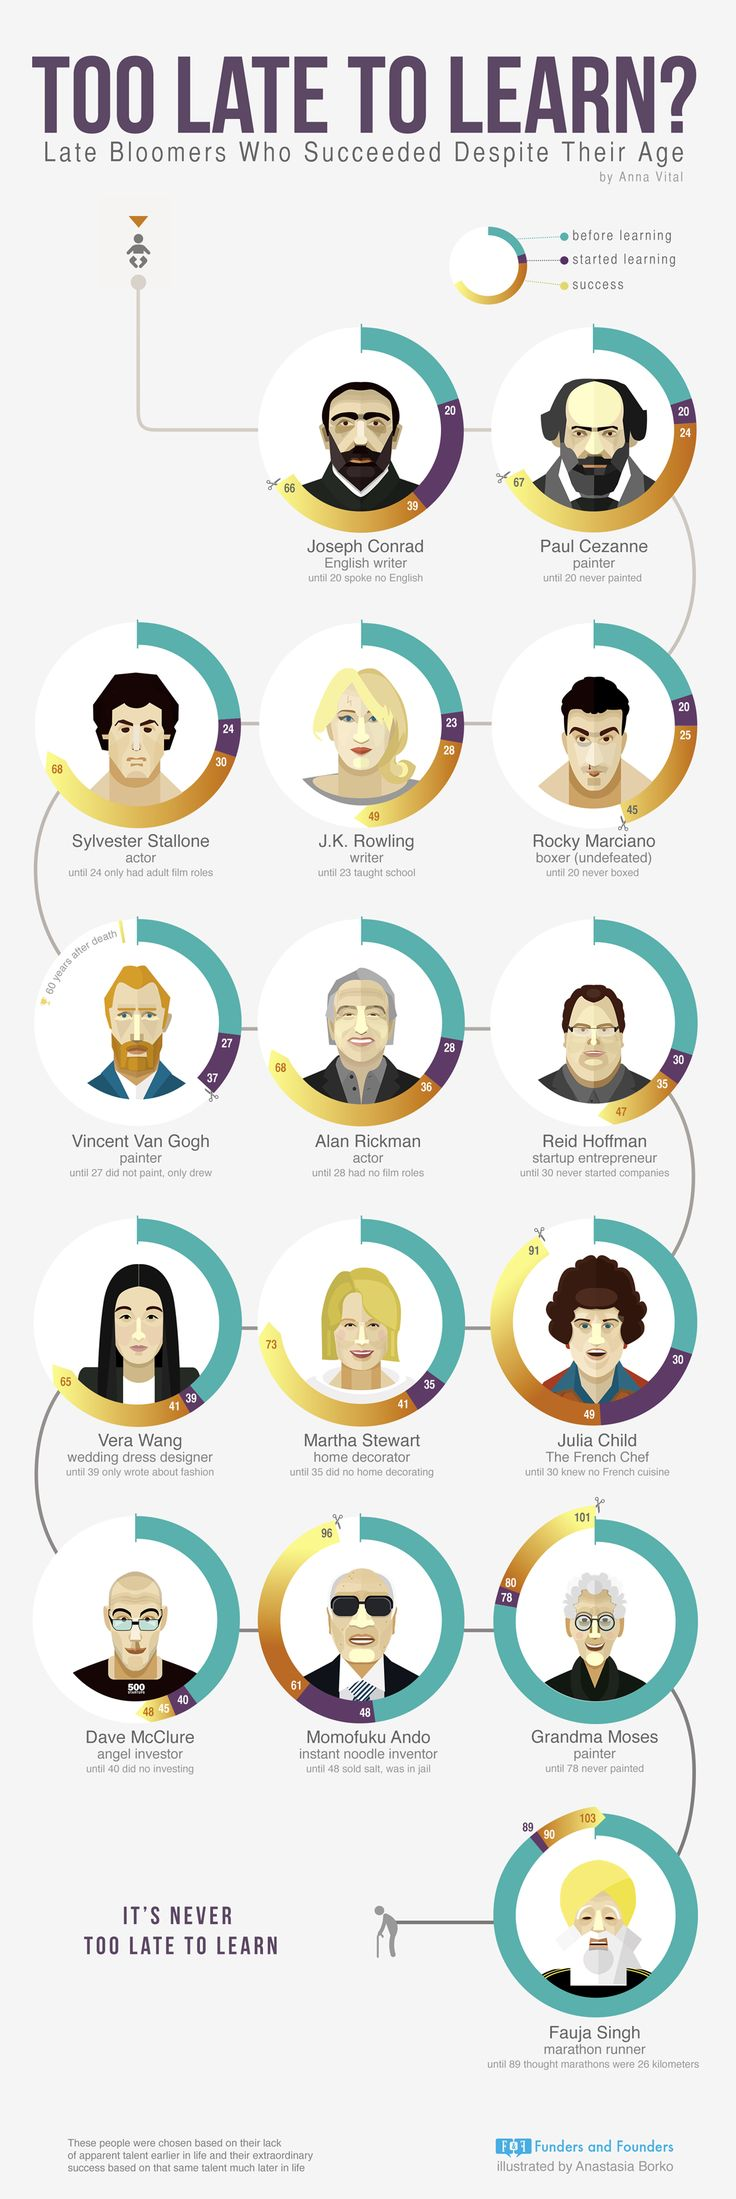 Too Late To Learn? Late Bloomers Who Succeeded Despite Their Age #infographic #SuccessStories #Celebrities